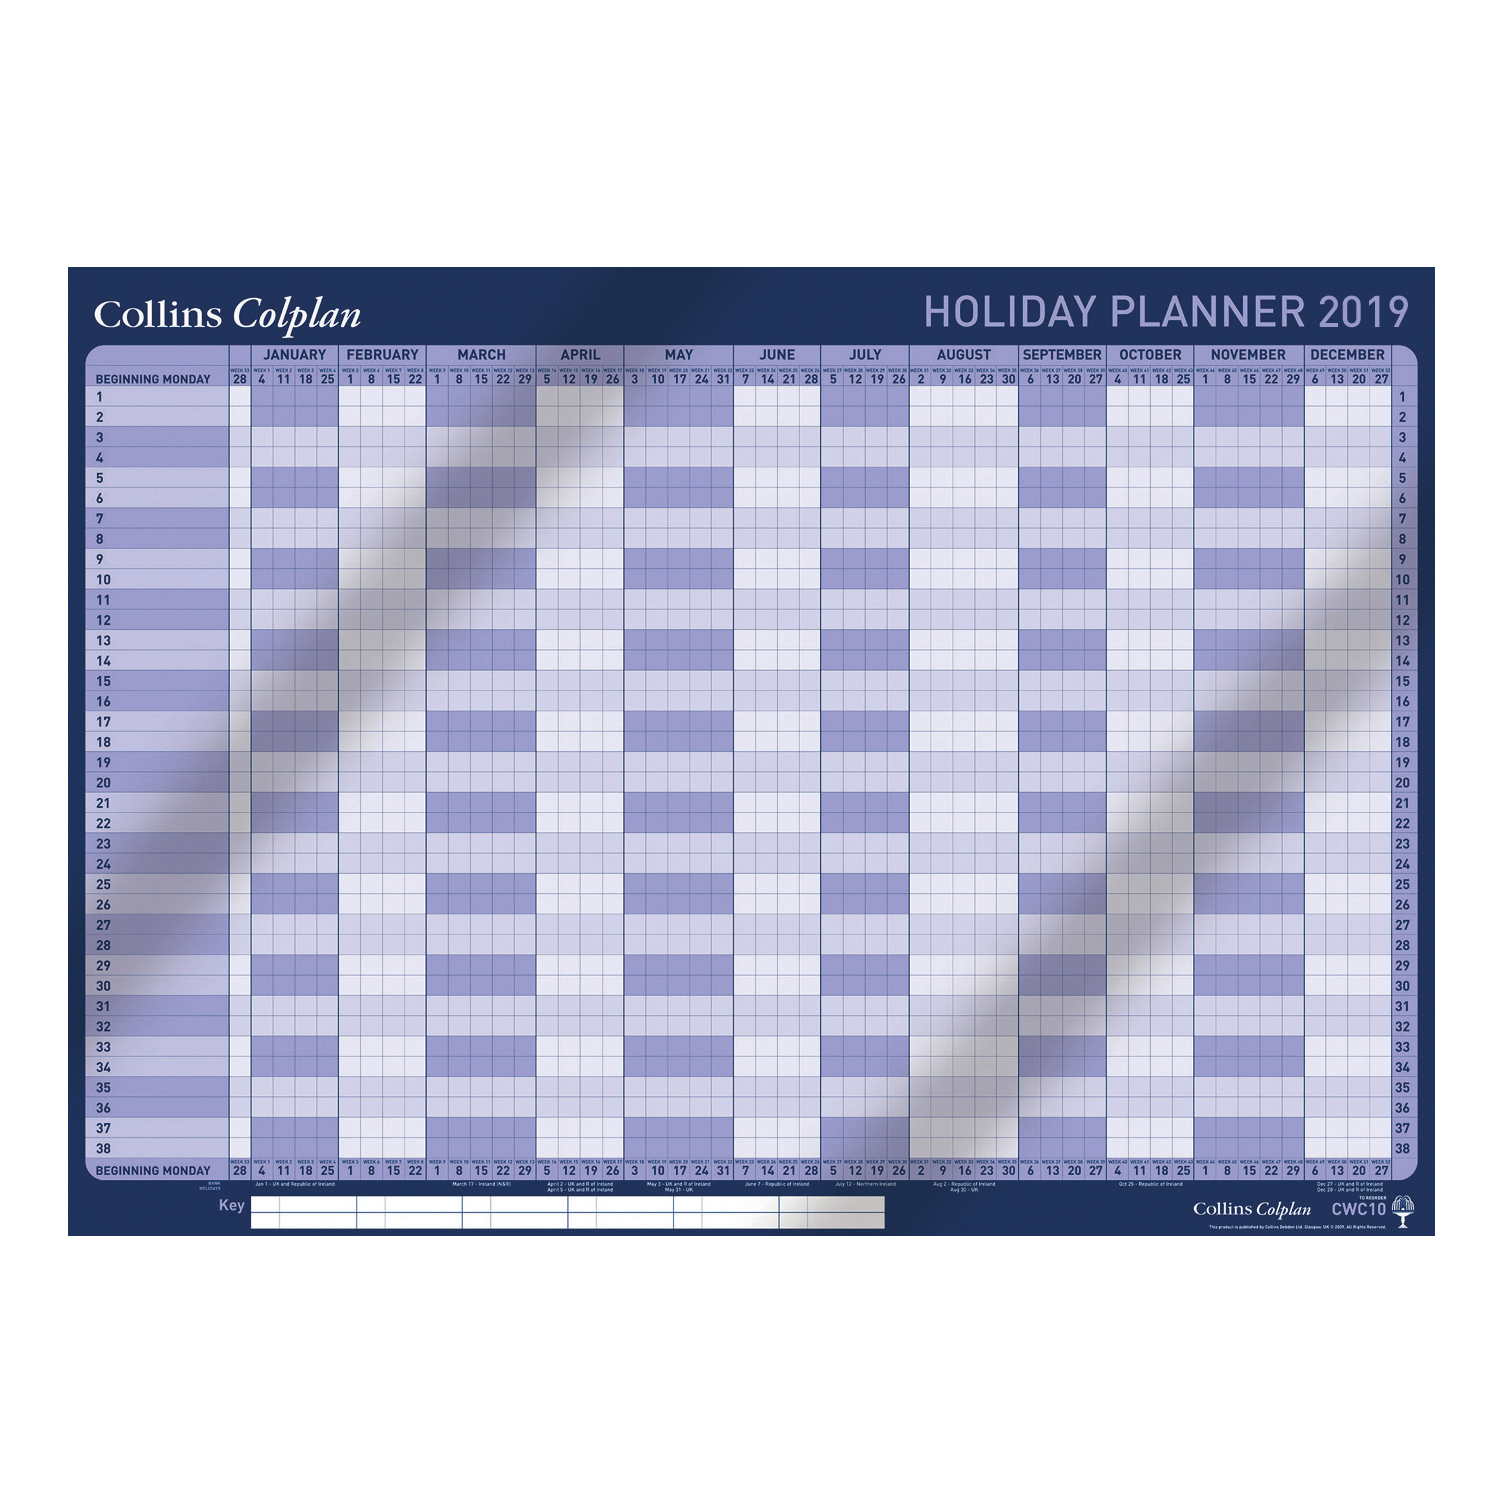 Collins Colplan 2019 Holiday Wall Planner Unmounted Landscape A1 594x840mm Blue Ref CWC10 2019